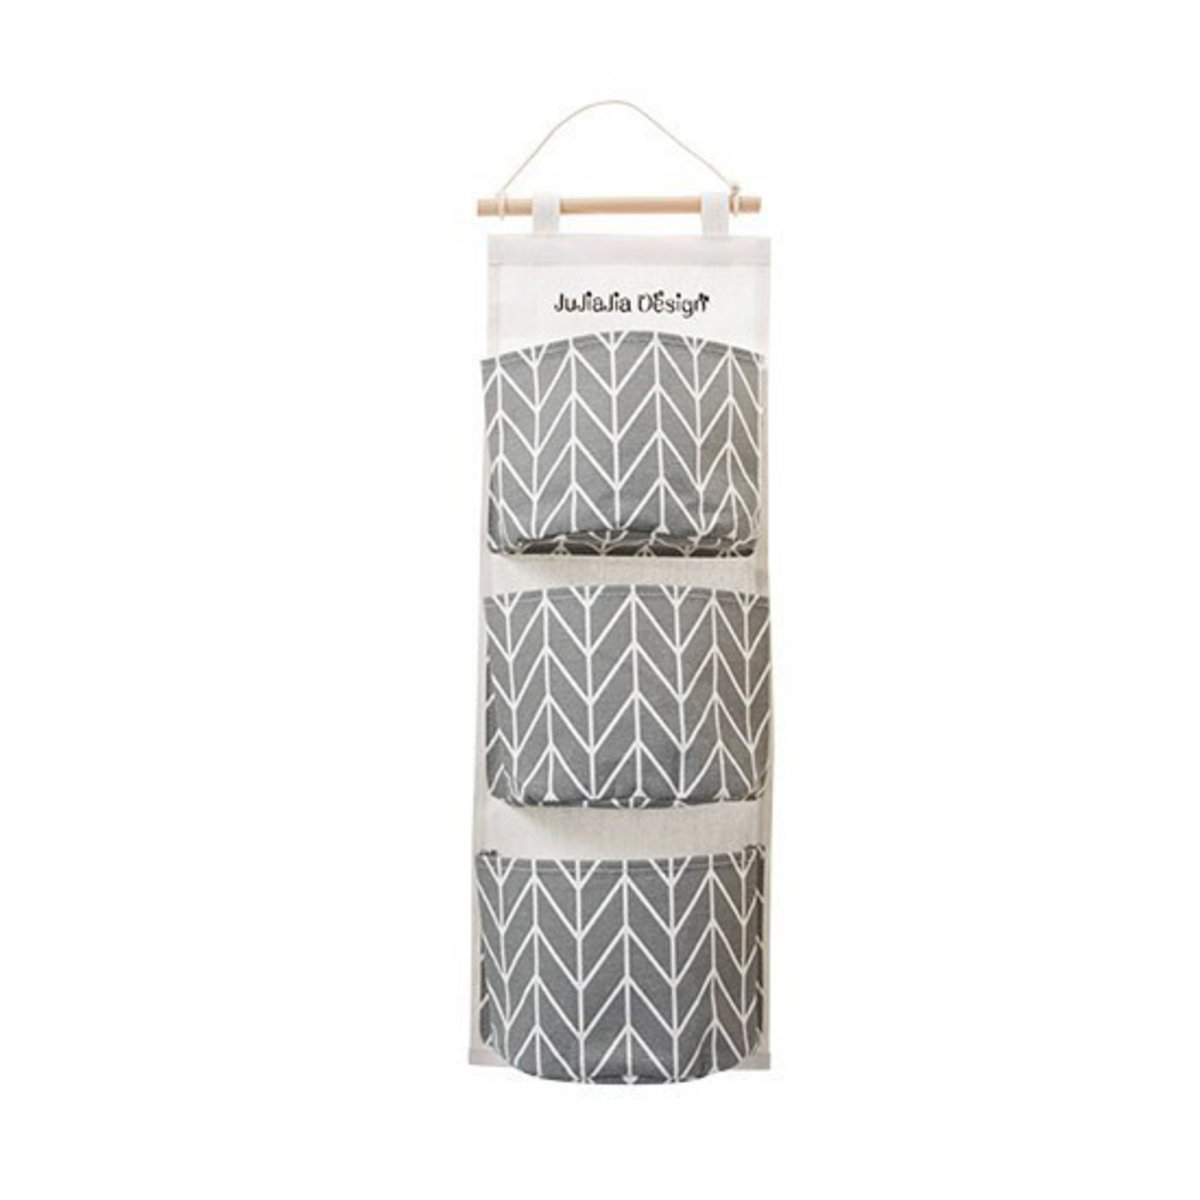 Hanging Organiser with 3 Pockets (Grey)